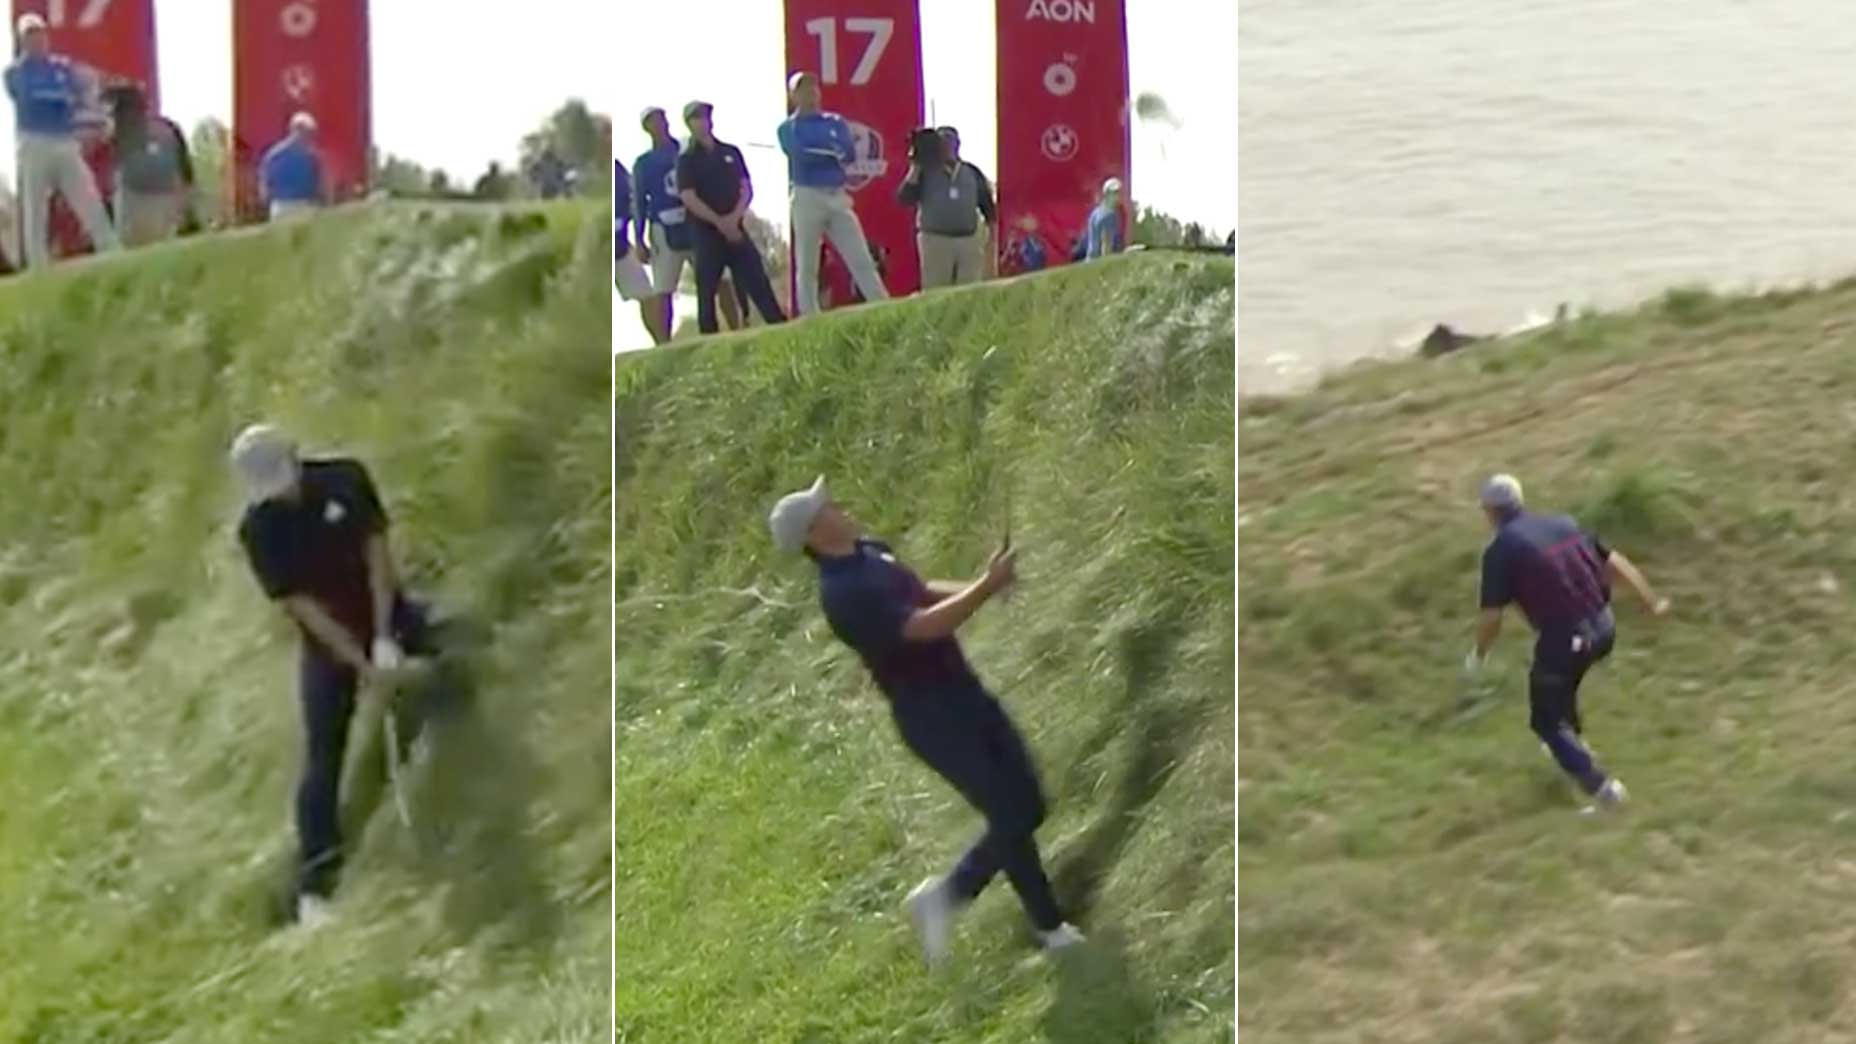 Jordan Spieth hits a shot at the ryder cup